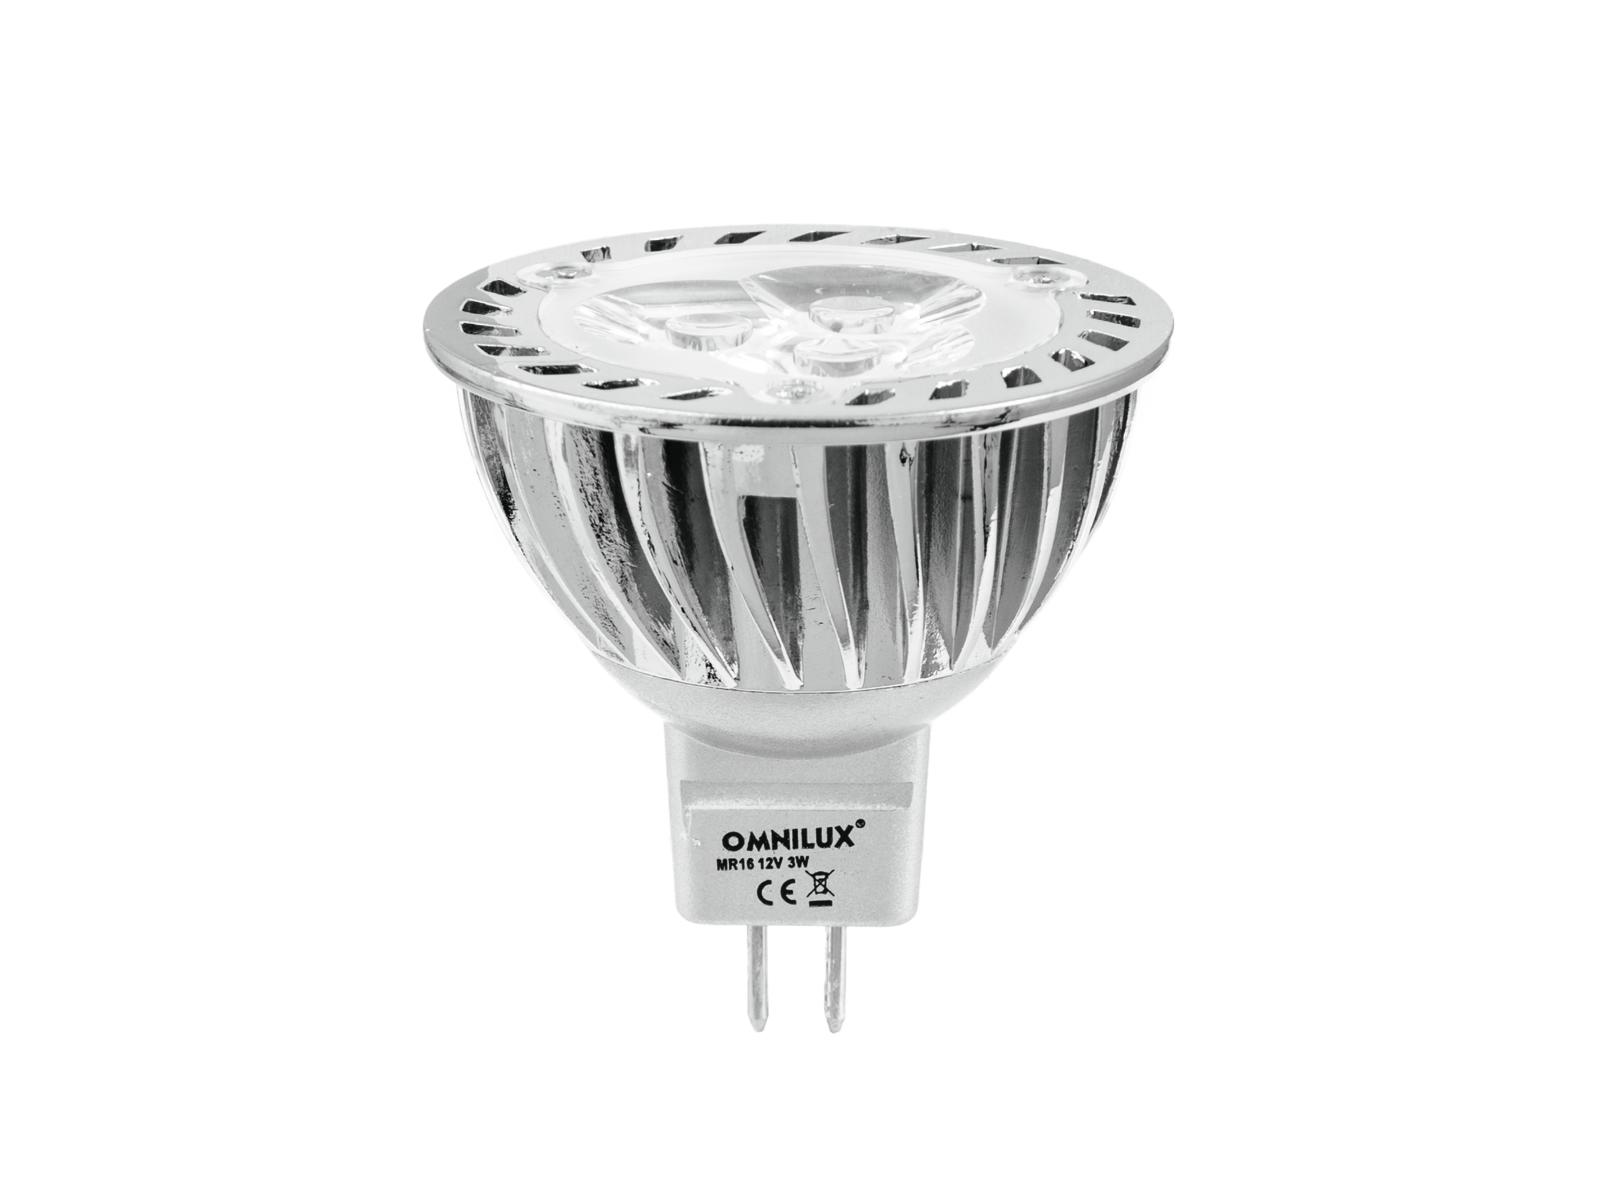 OMNILUX MR16 12V GU-5.3 3x1W LED 6500K